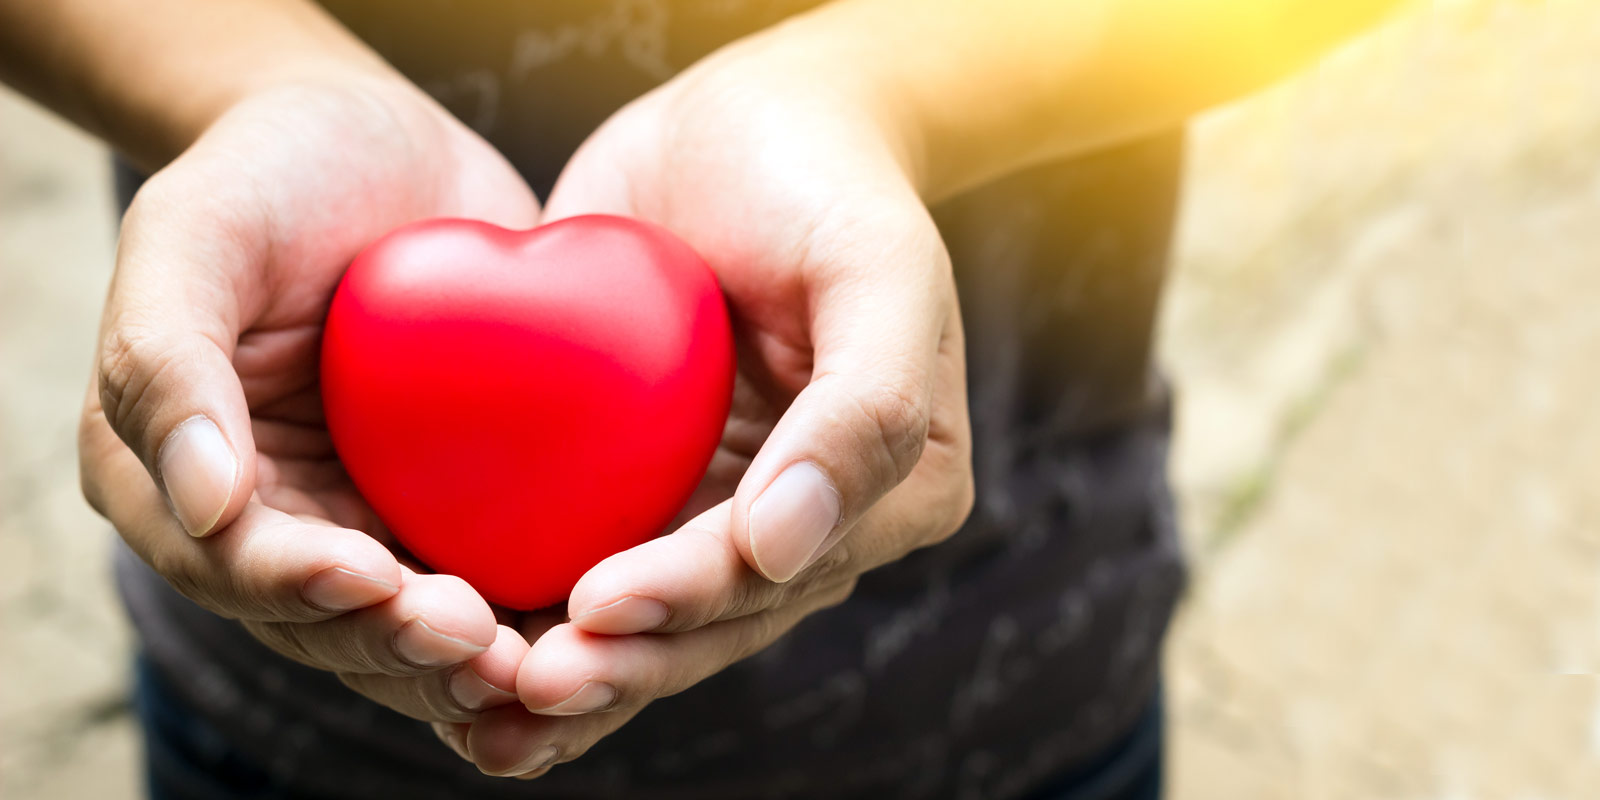 hands holding heart shaped object